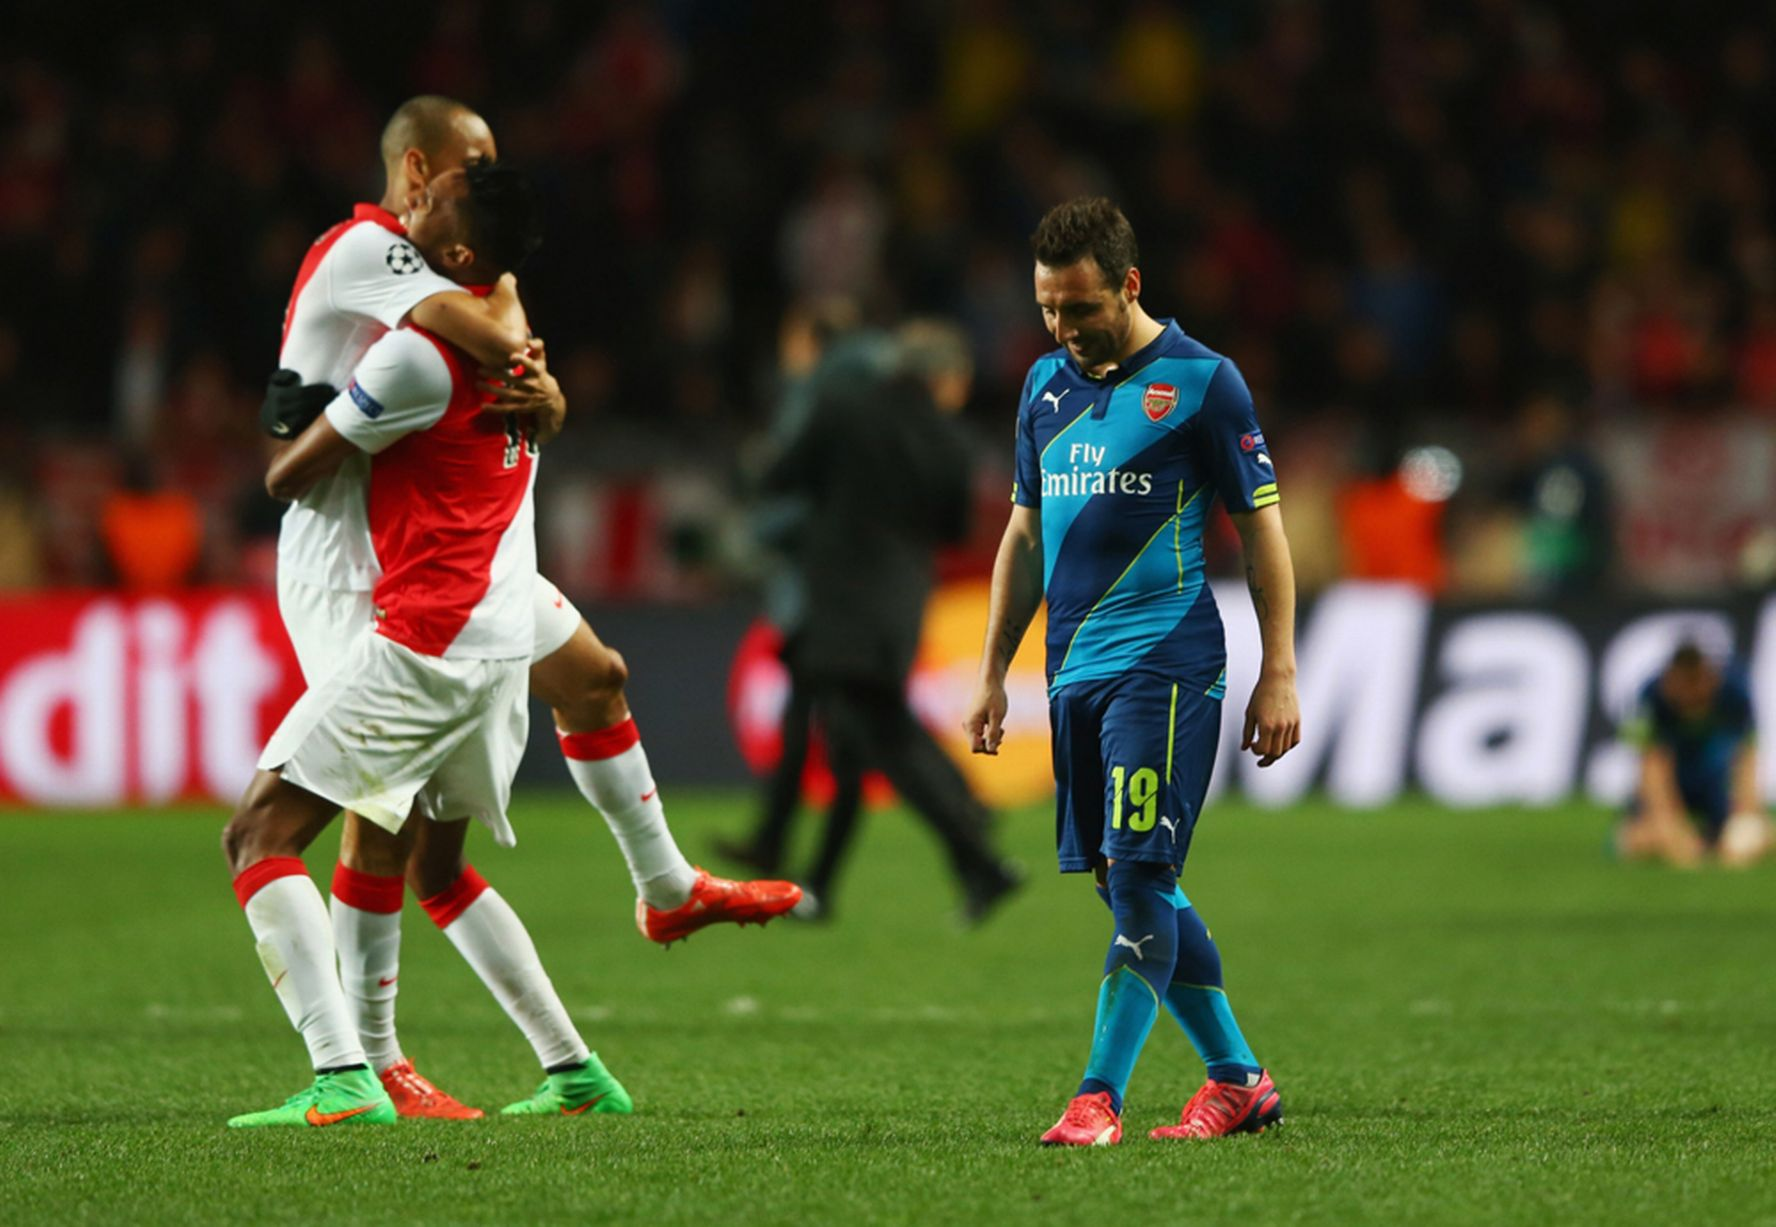 Santi Cazorla looks dejected as Monaco players celebrate